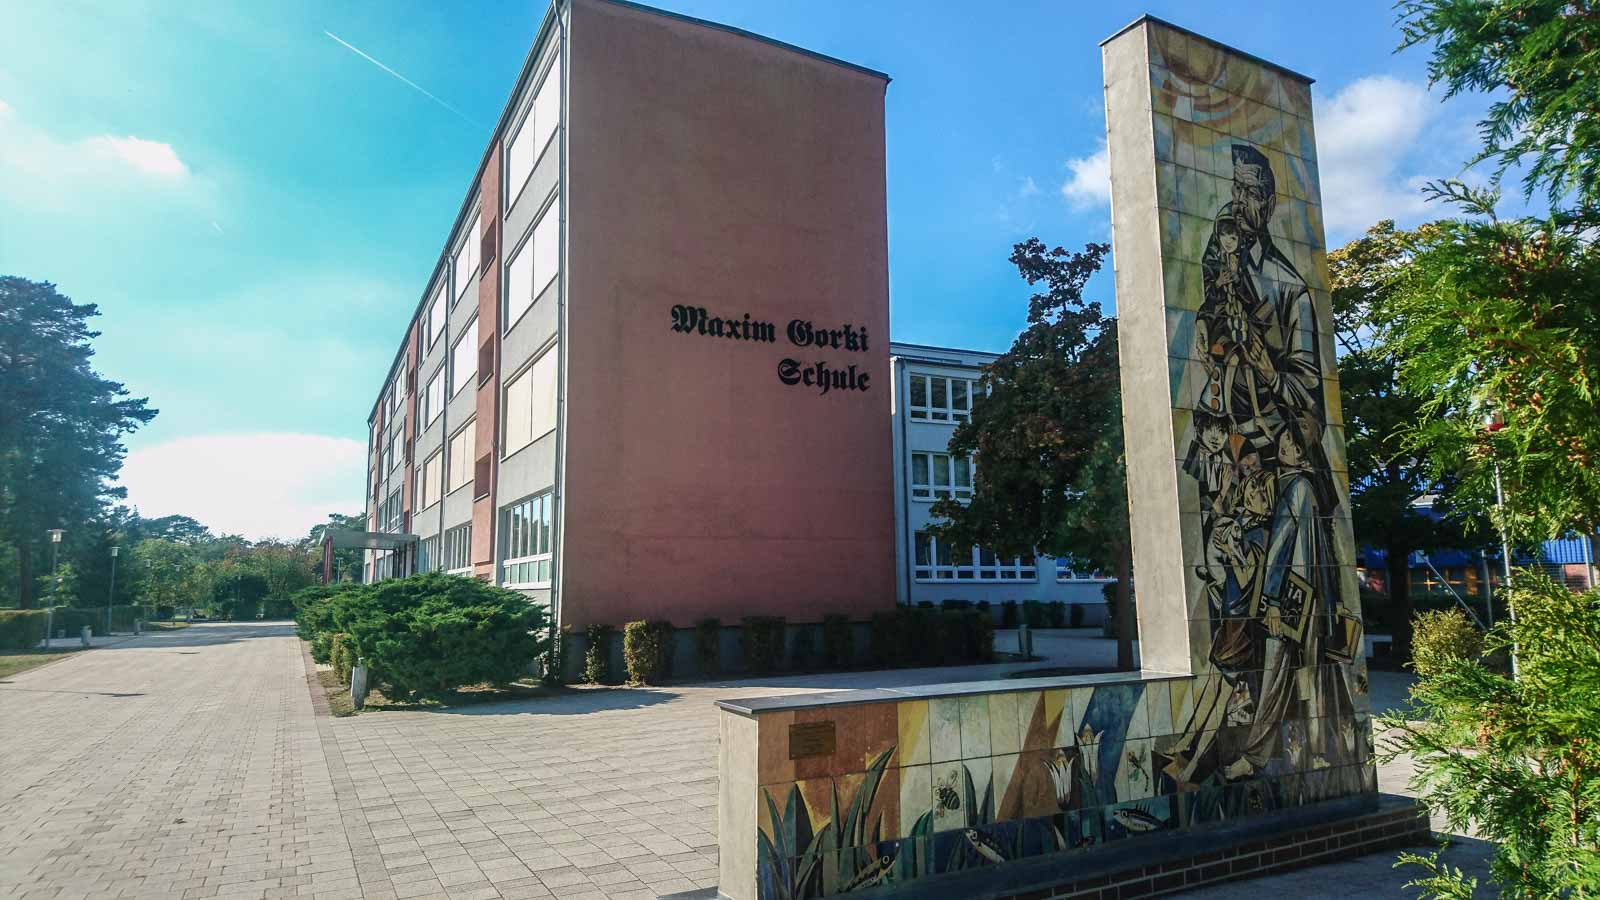 Maxim Gorki Schule Bad Saarow